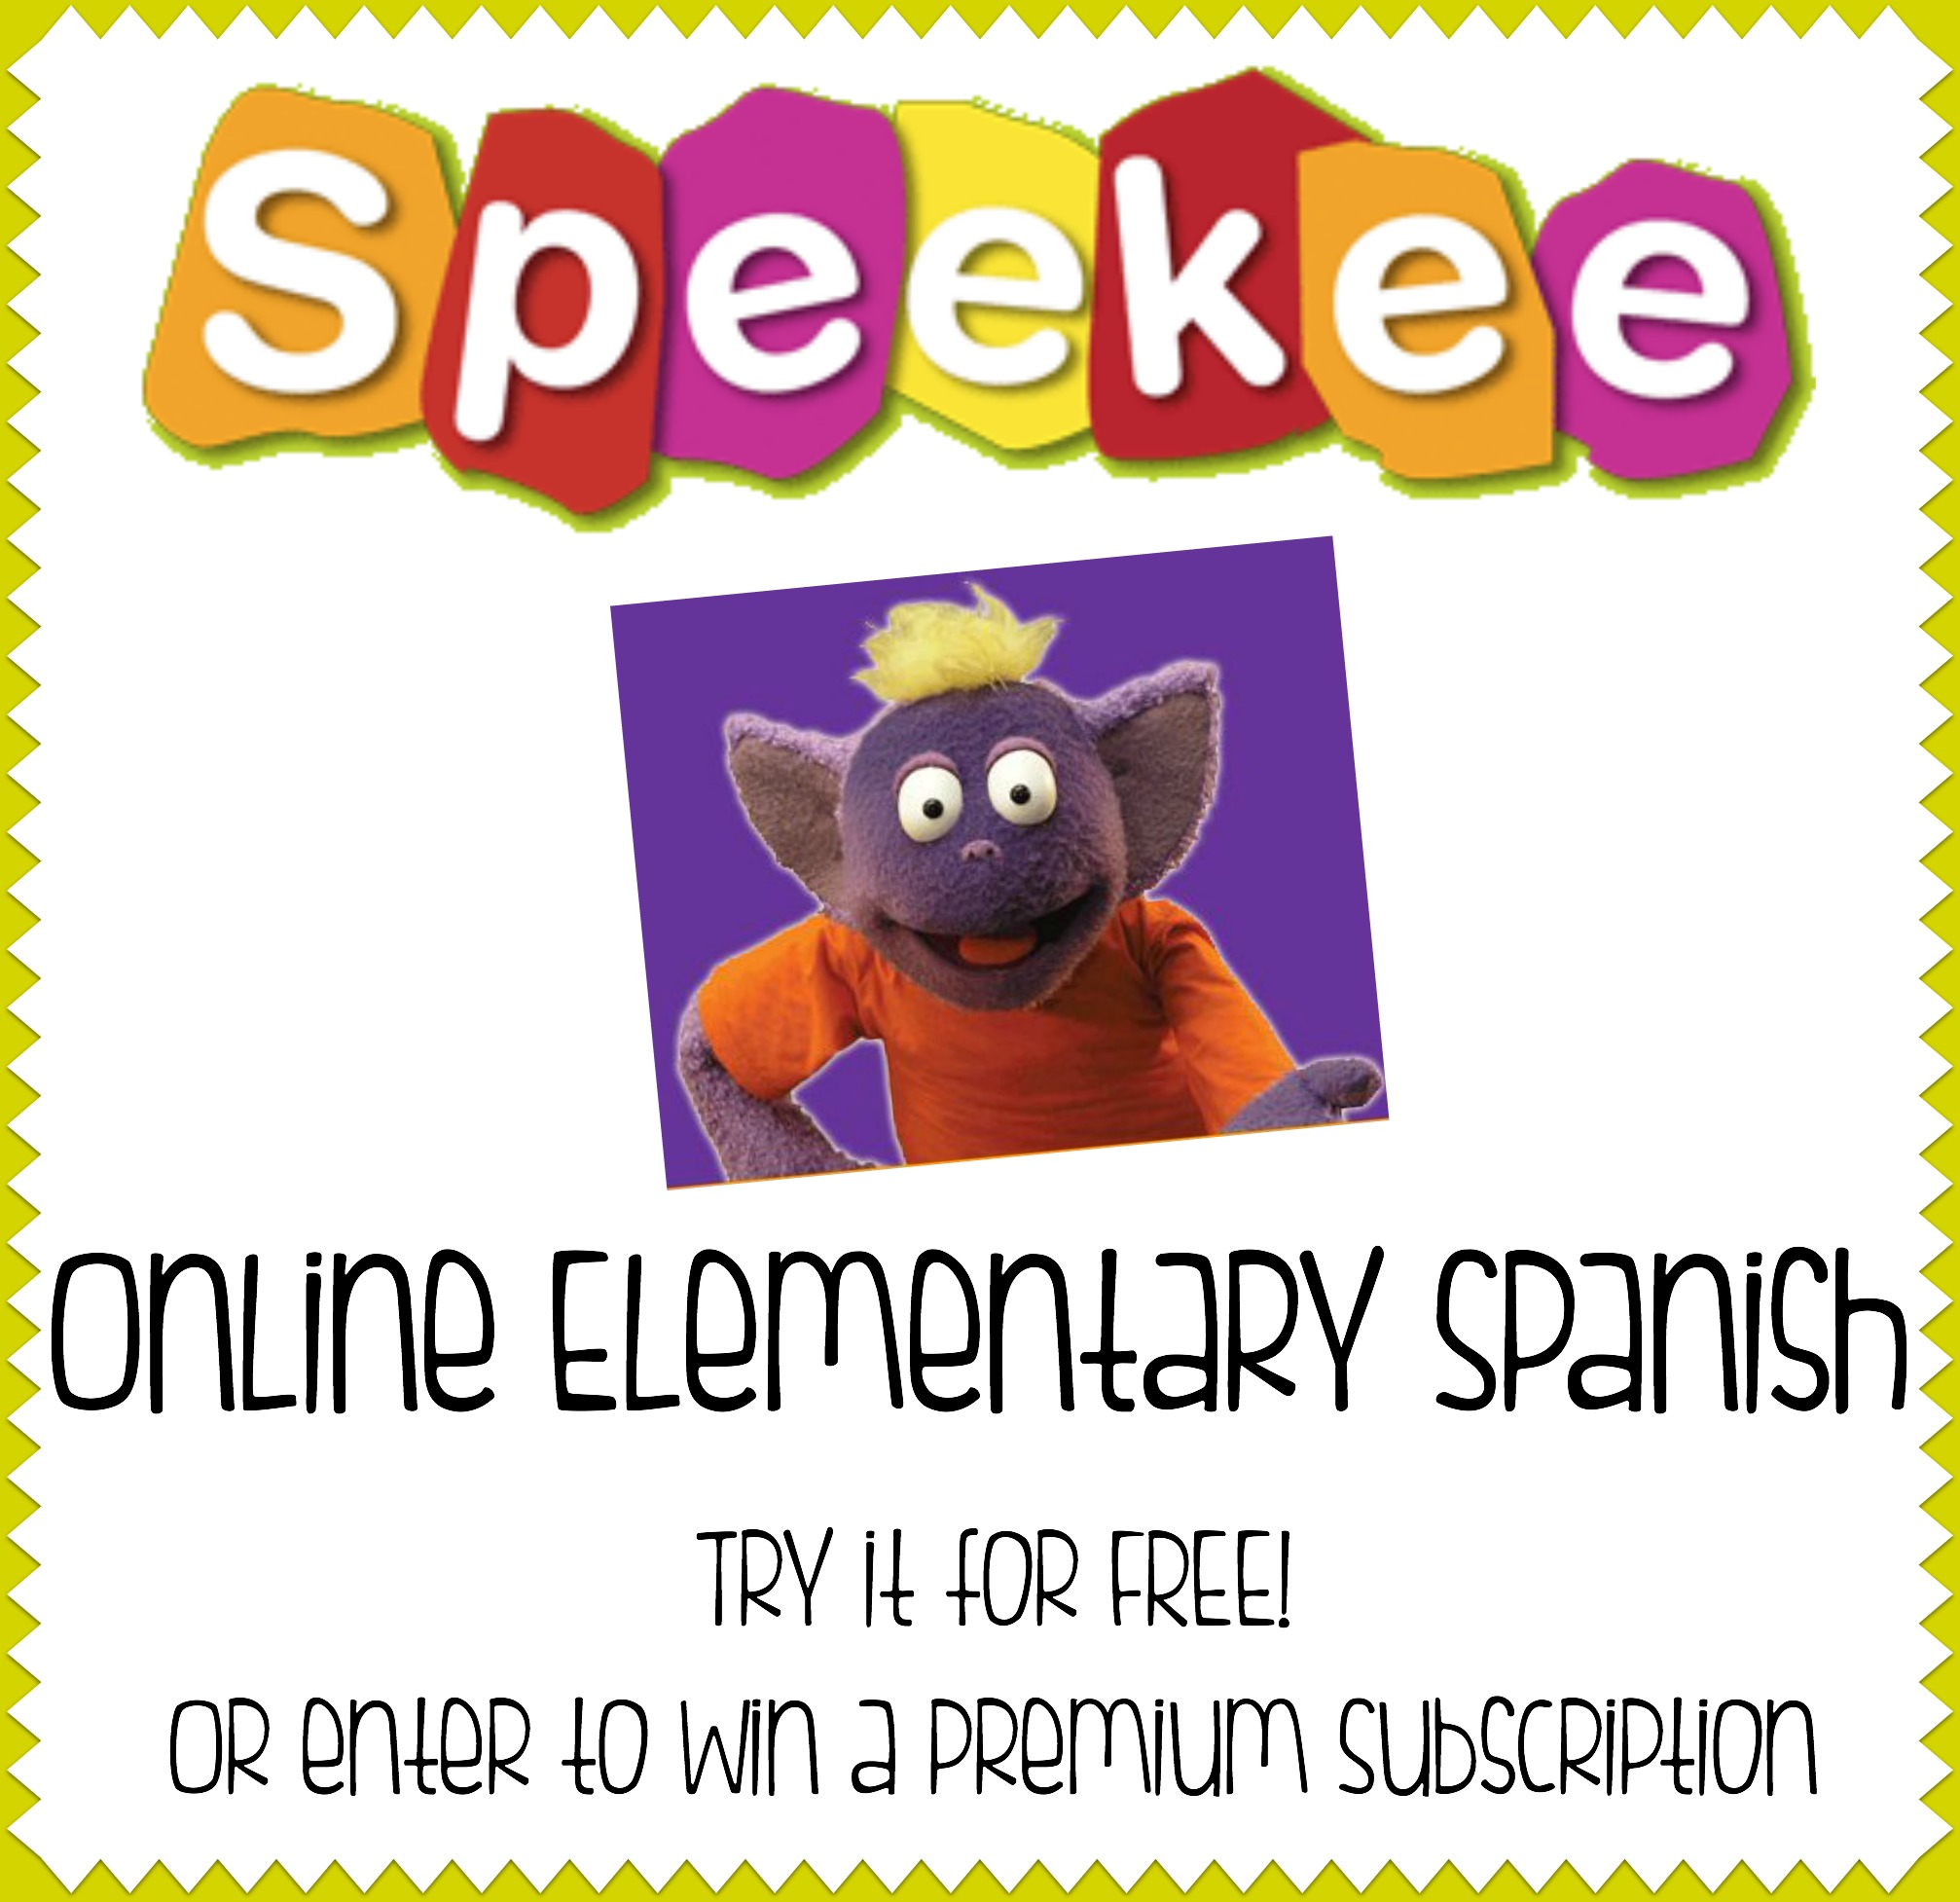 Online Elementary Spanish {GIVEAWAY!}